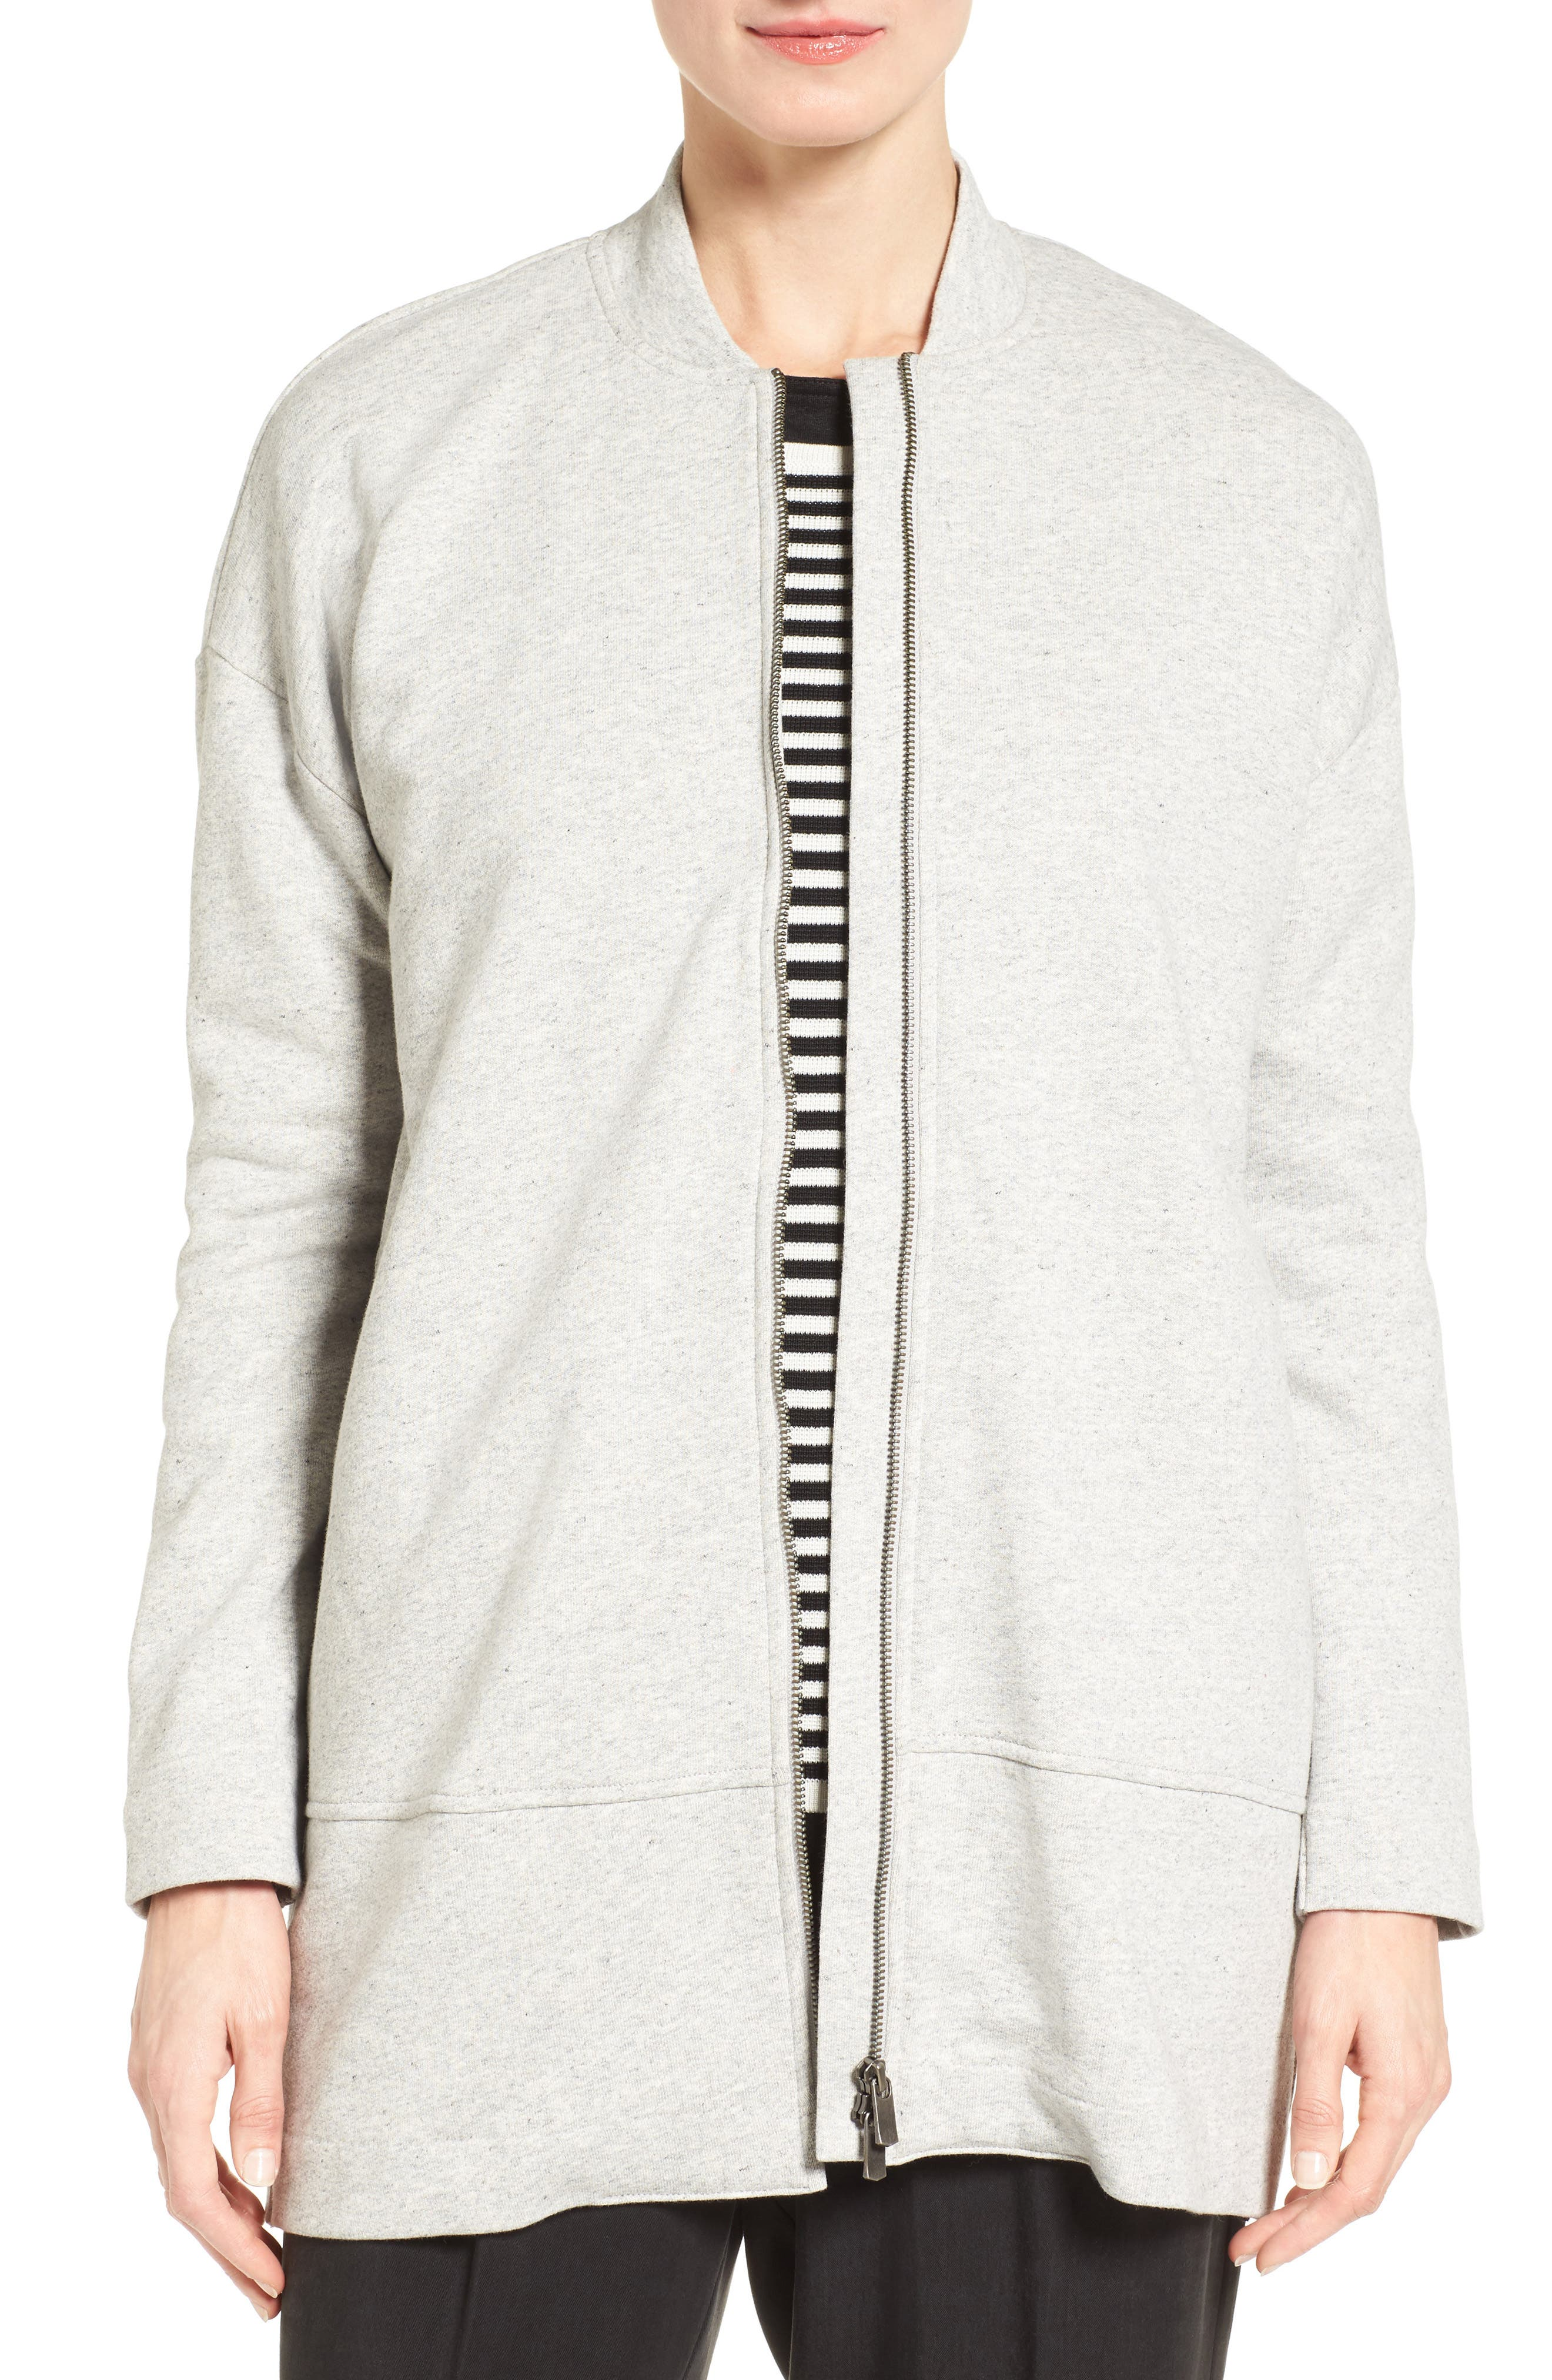 EILEEN FISHER, Brushed Back French Terry Jacket, Main thumbnail 1, color, DARK PEARL